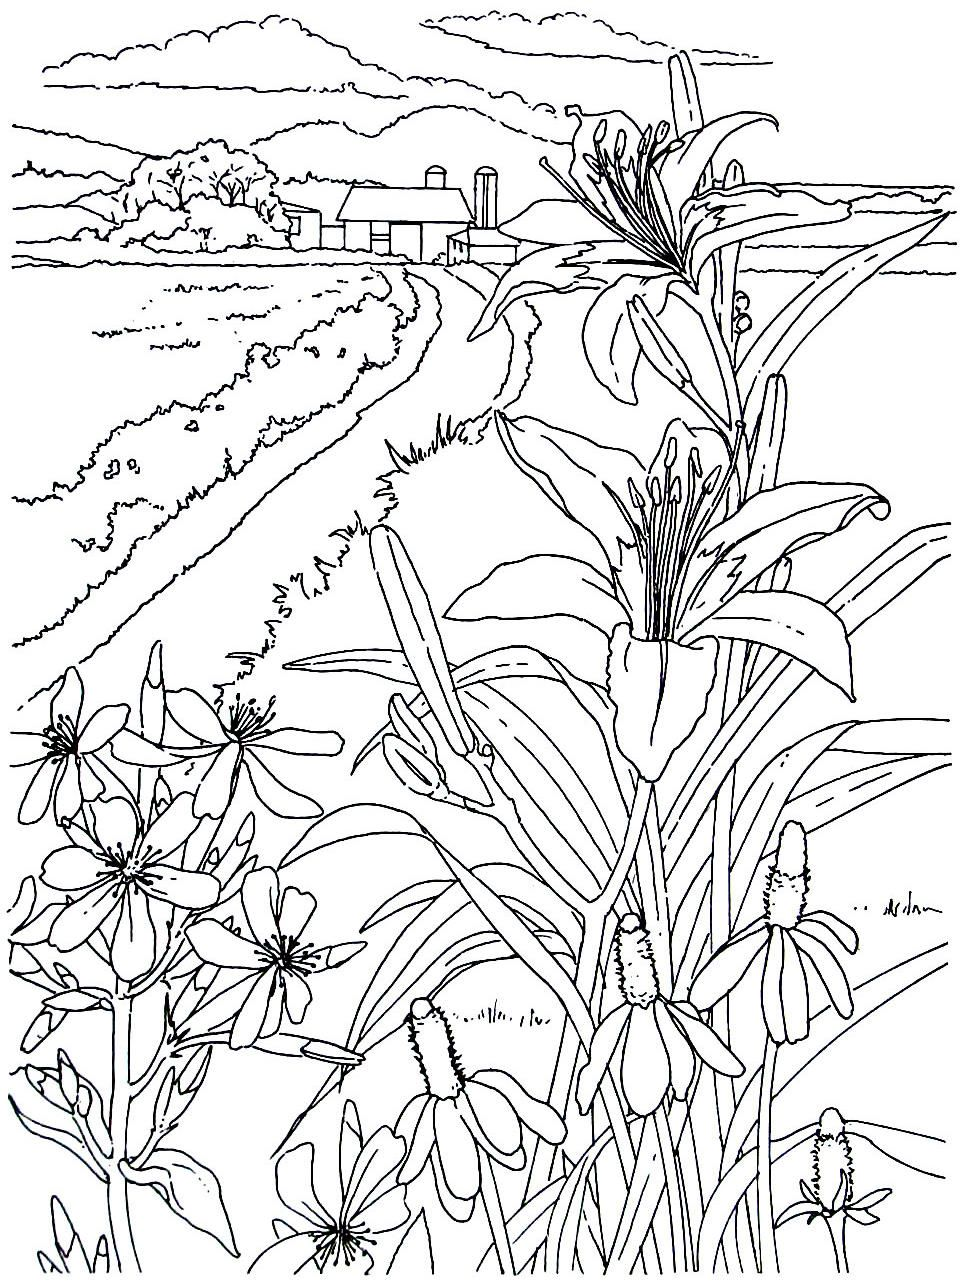 Corn And Flowers Coloring Page